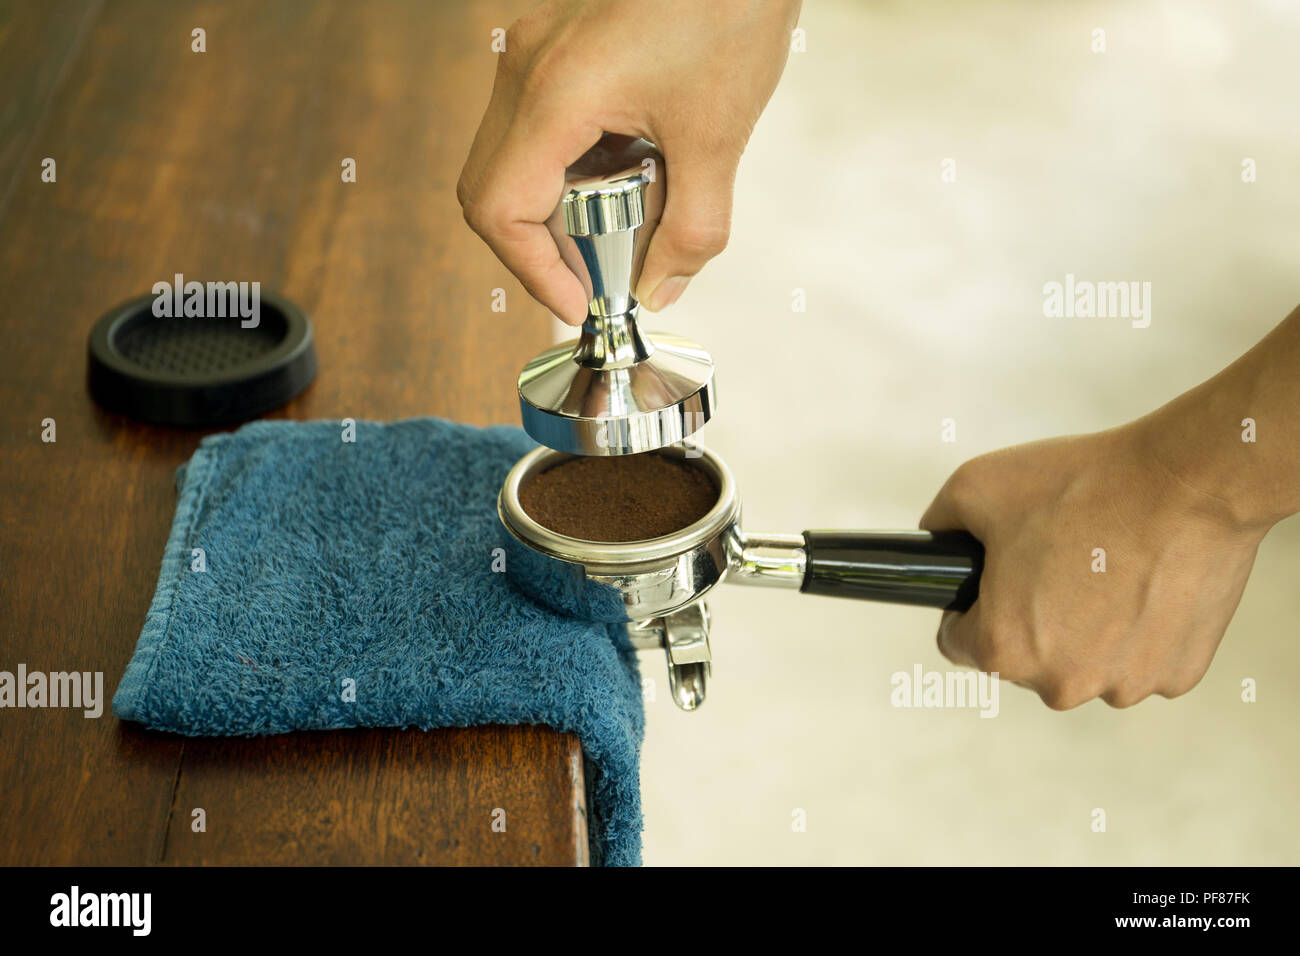 Barista pressing ground coffee into portafilter using tamper with blue cloth on the table Stock Photo